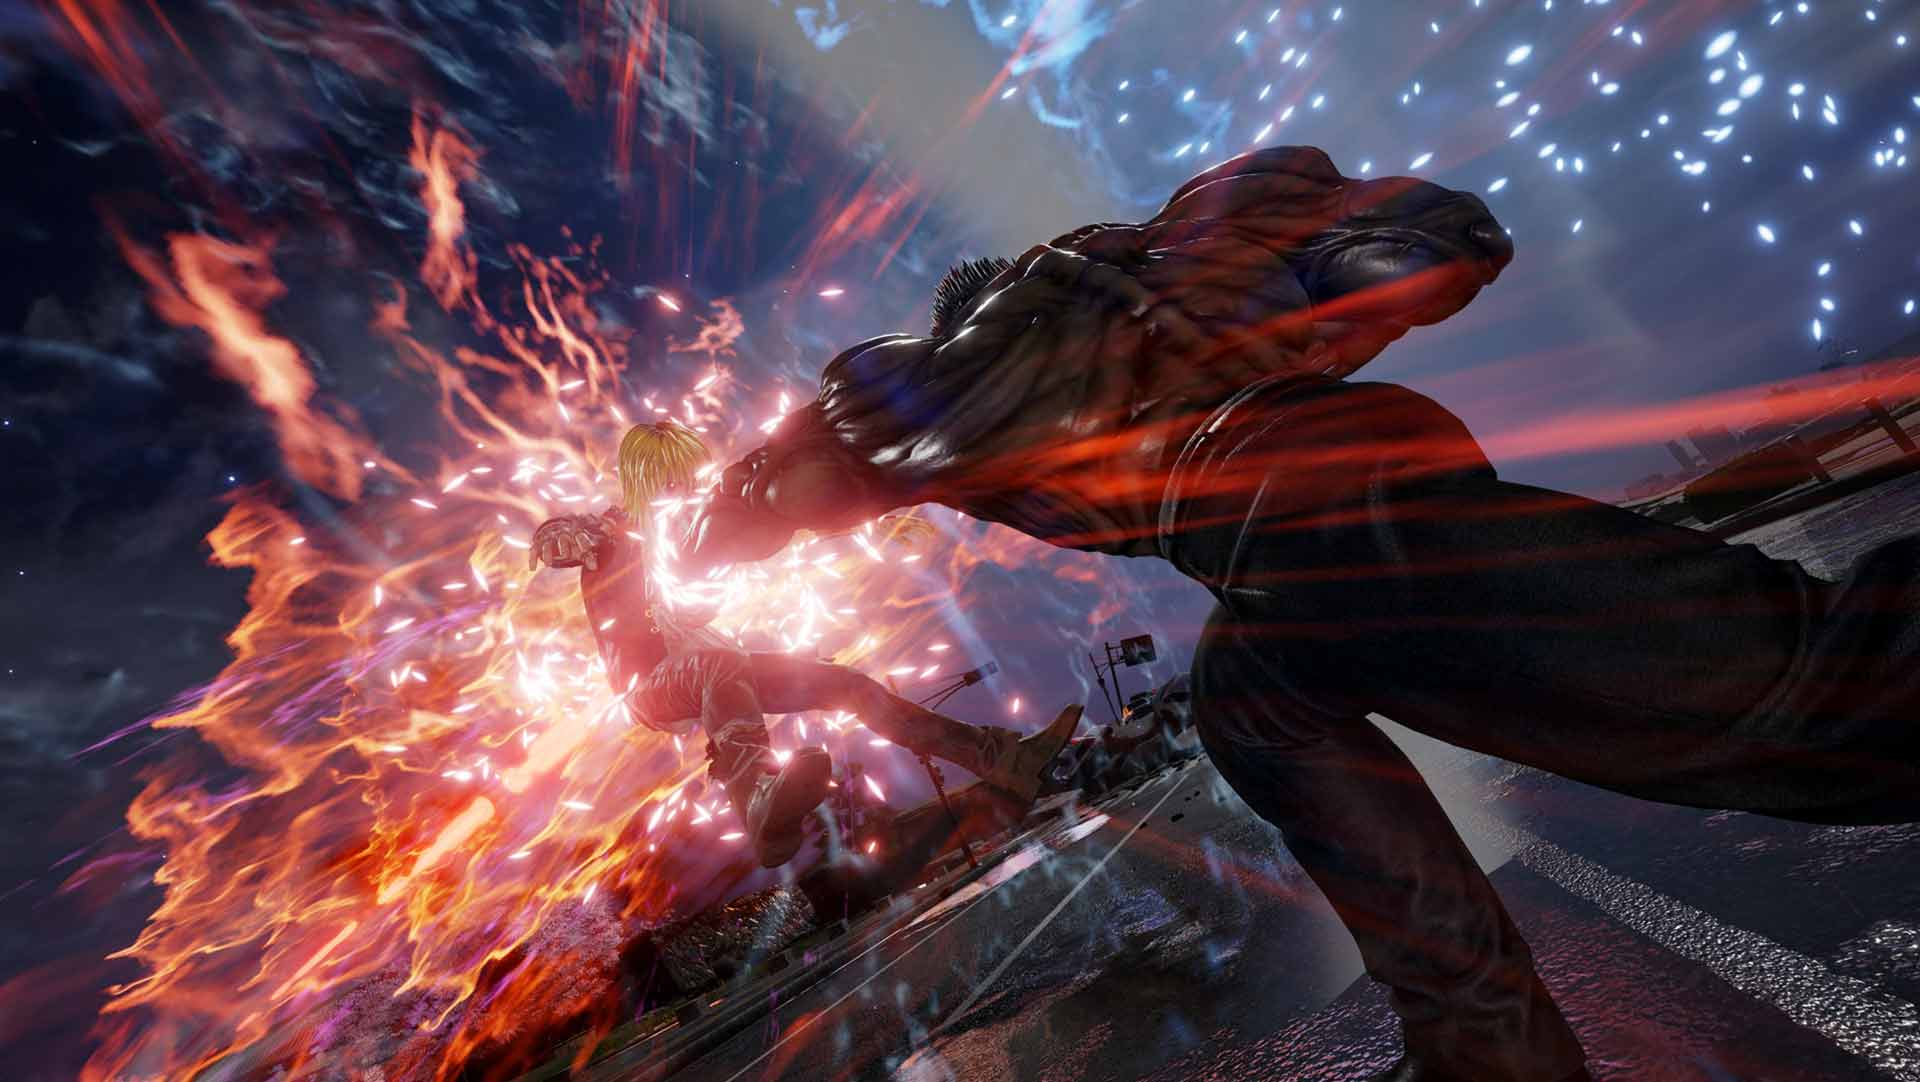 JUMP FORCE Deluxe Edition game image